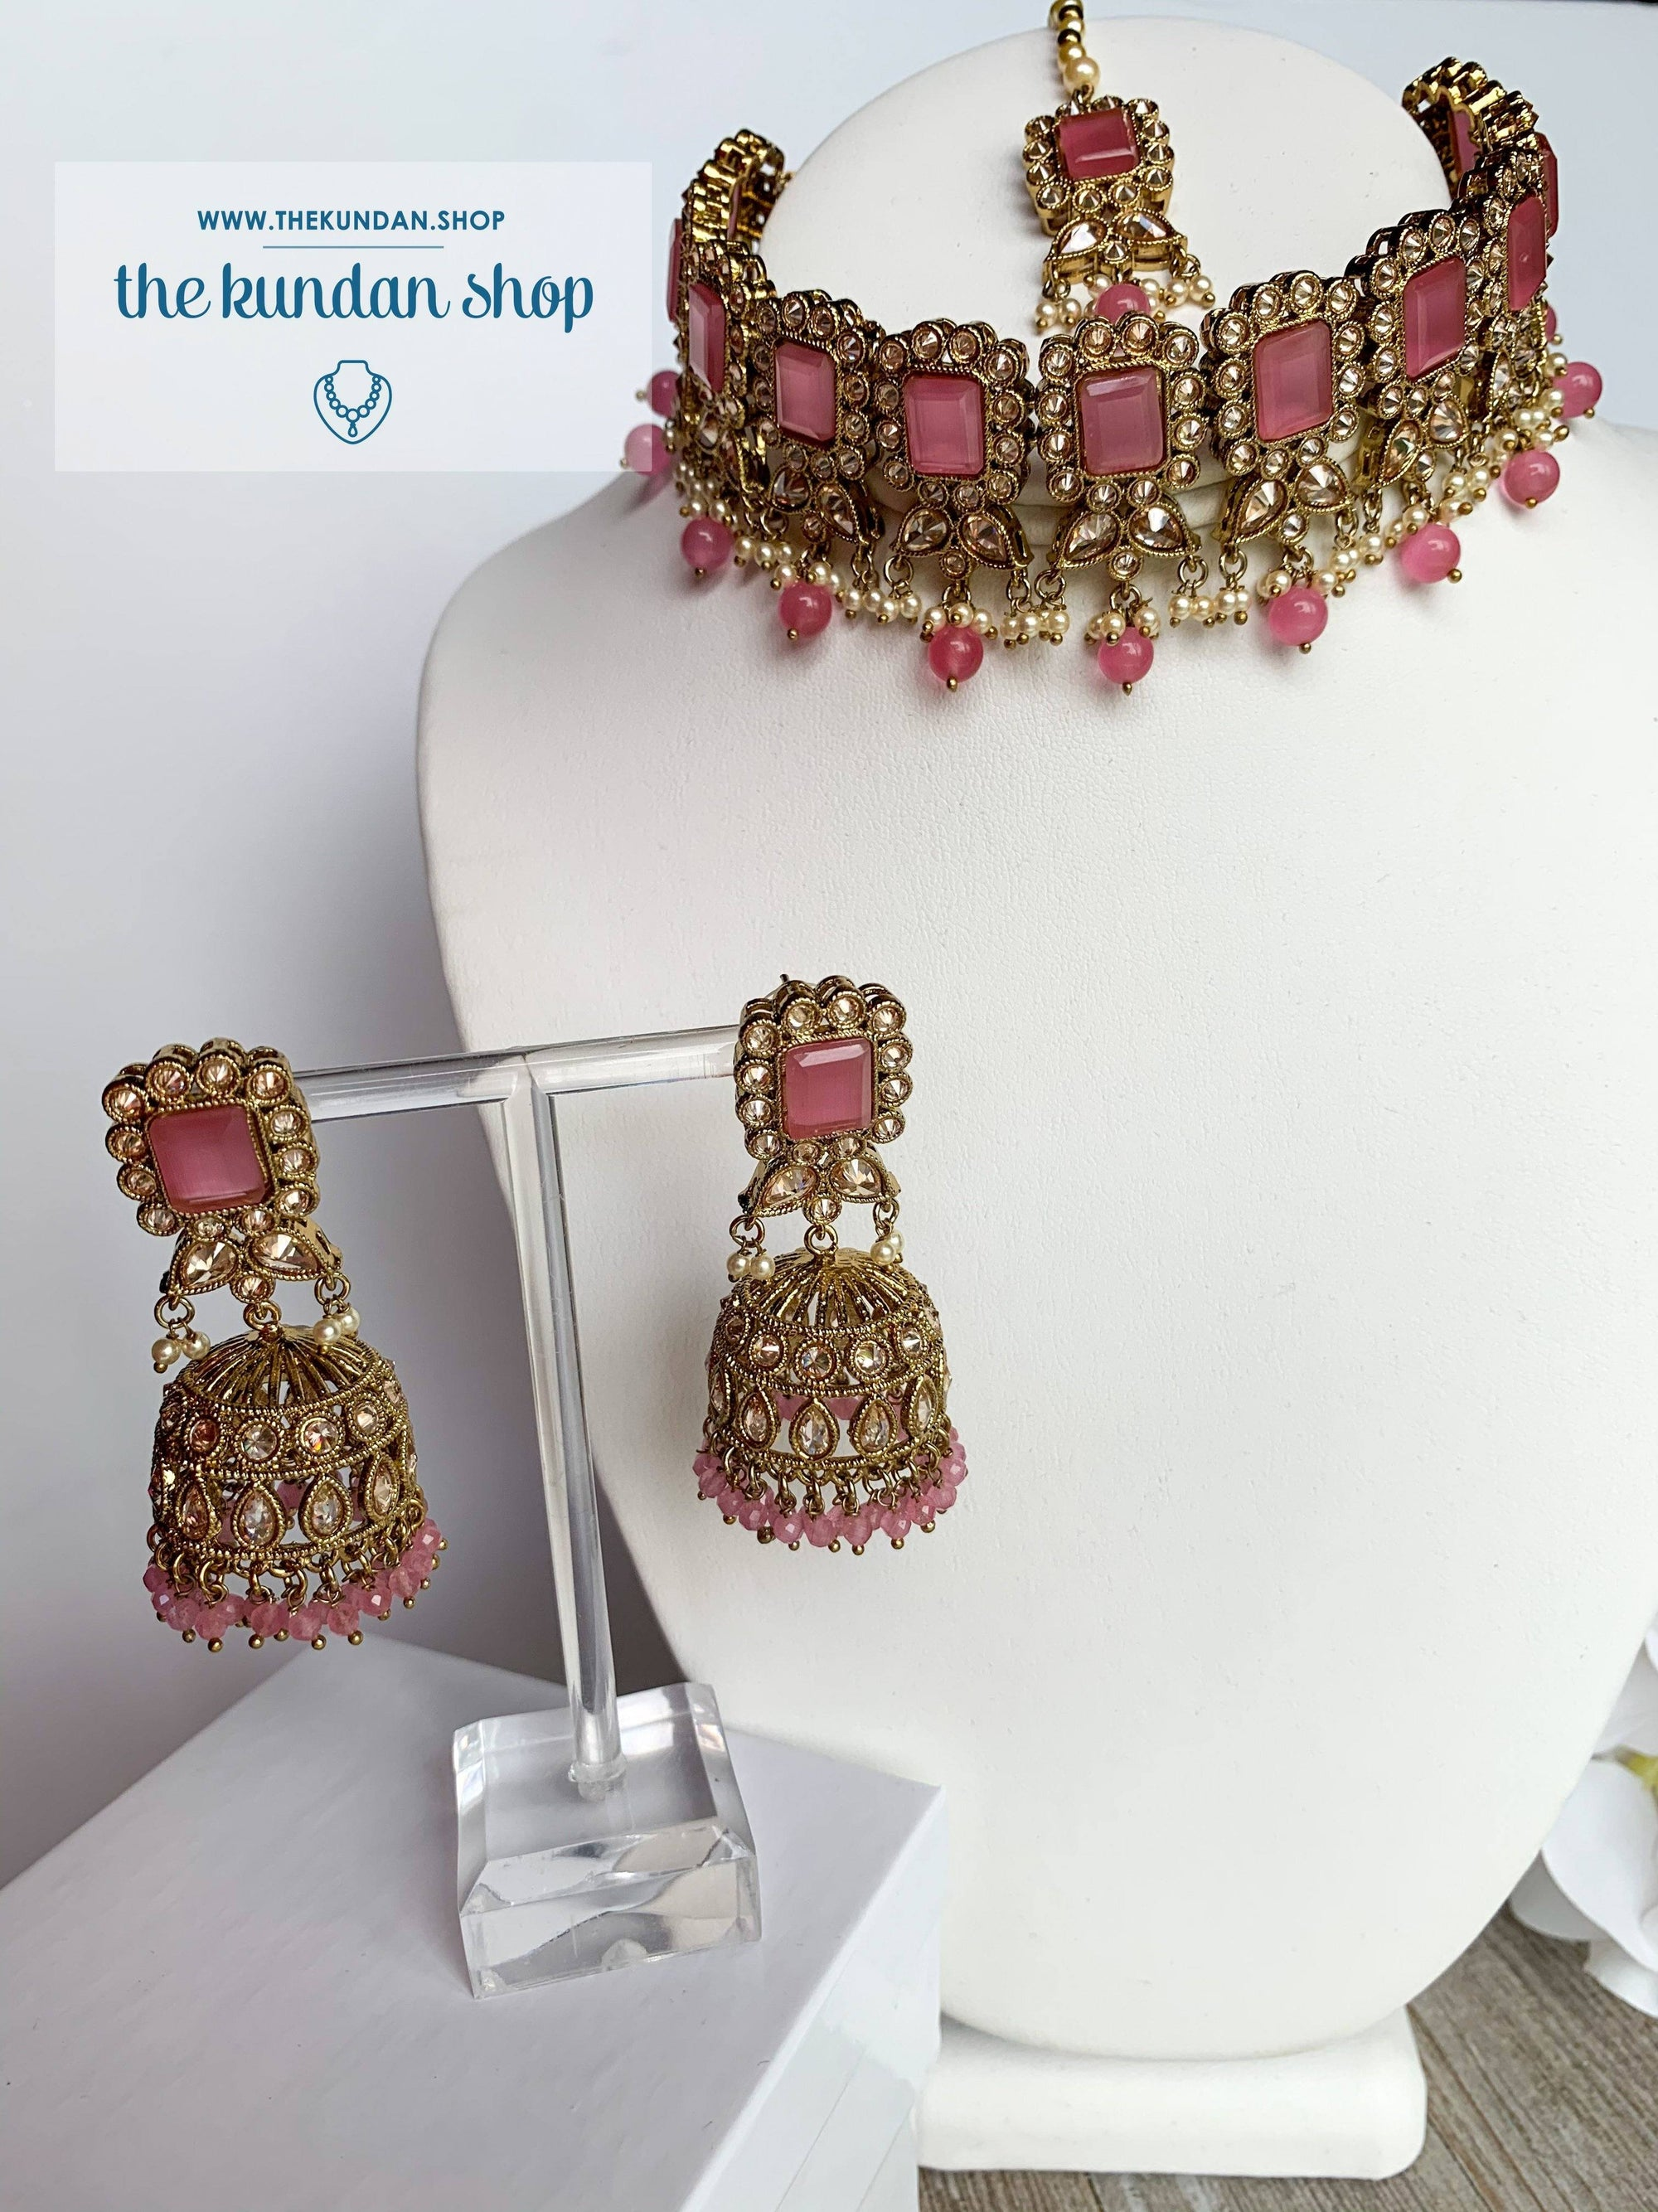 Valiant in Pastel Pink Necklace Sets THE KUNDAN SHOP